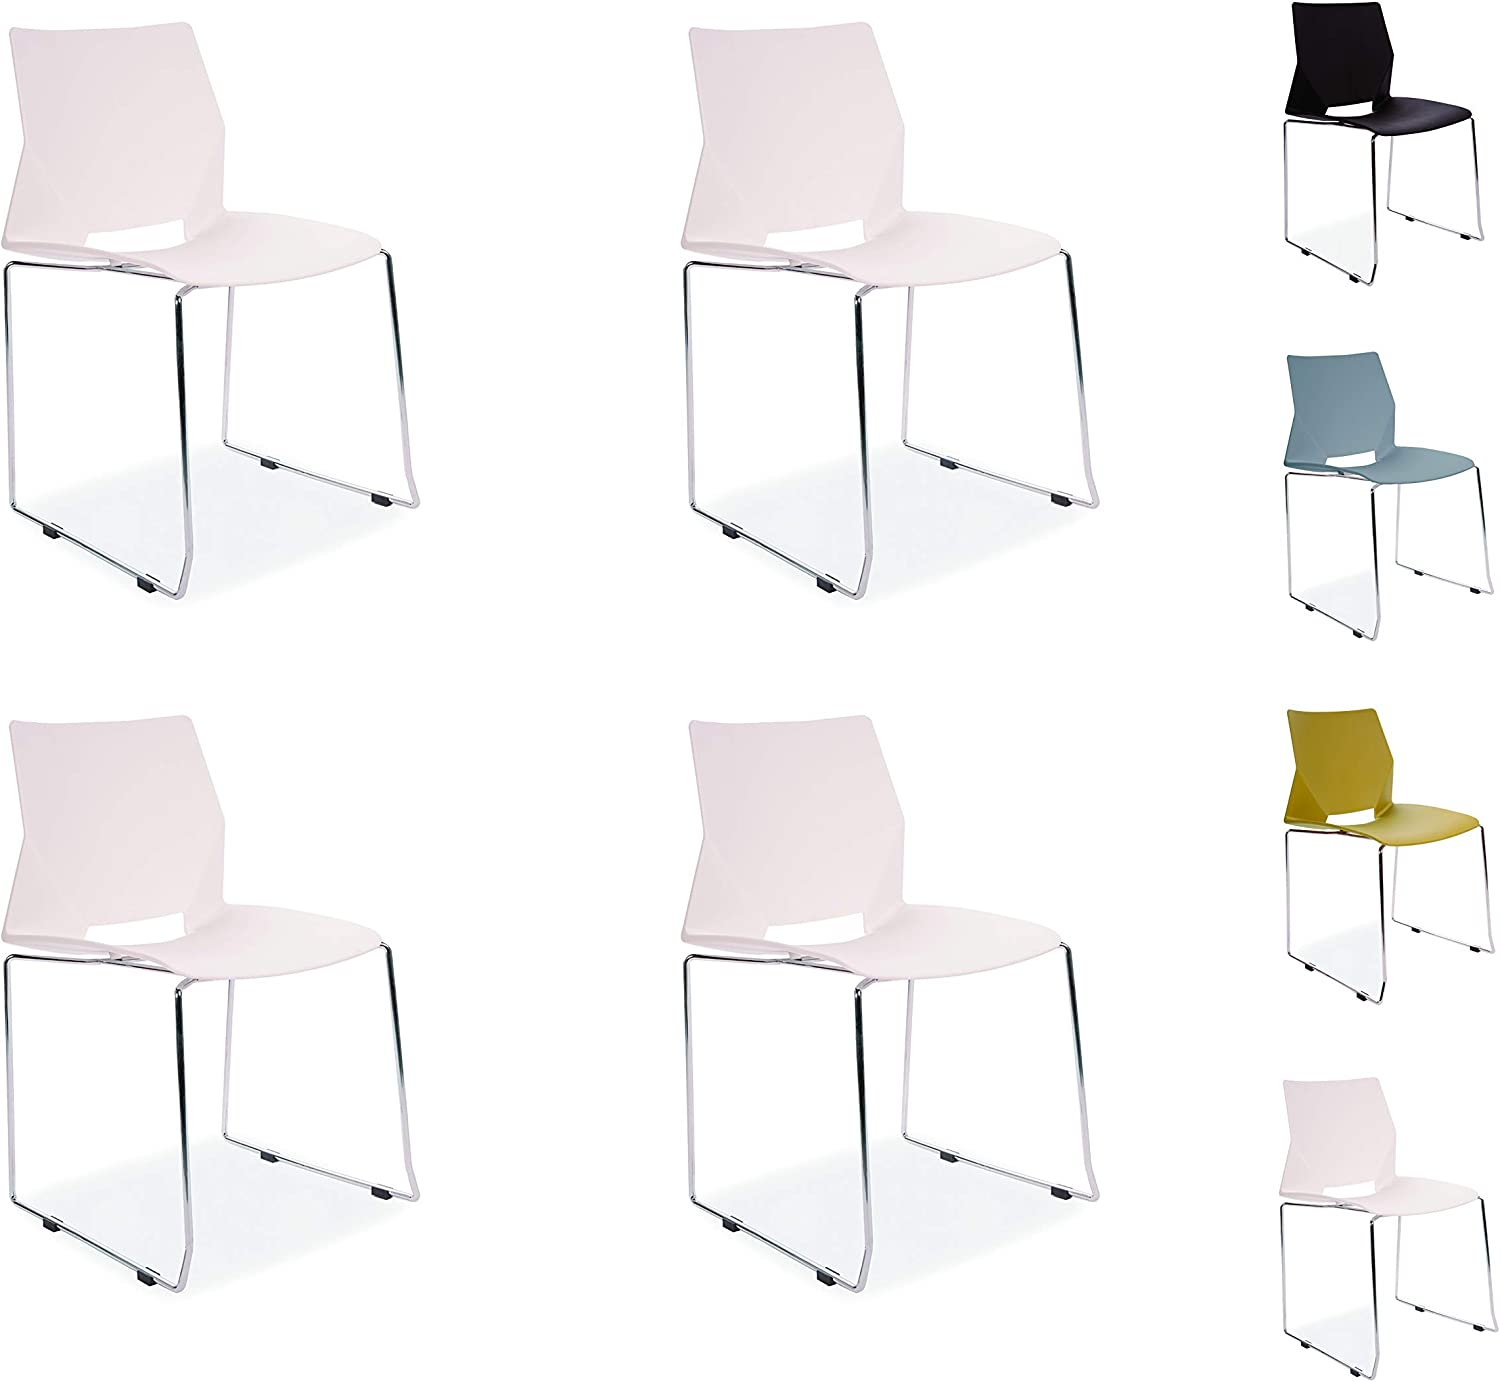 New Ideas All Square Chair